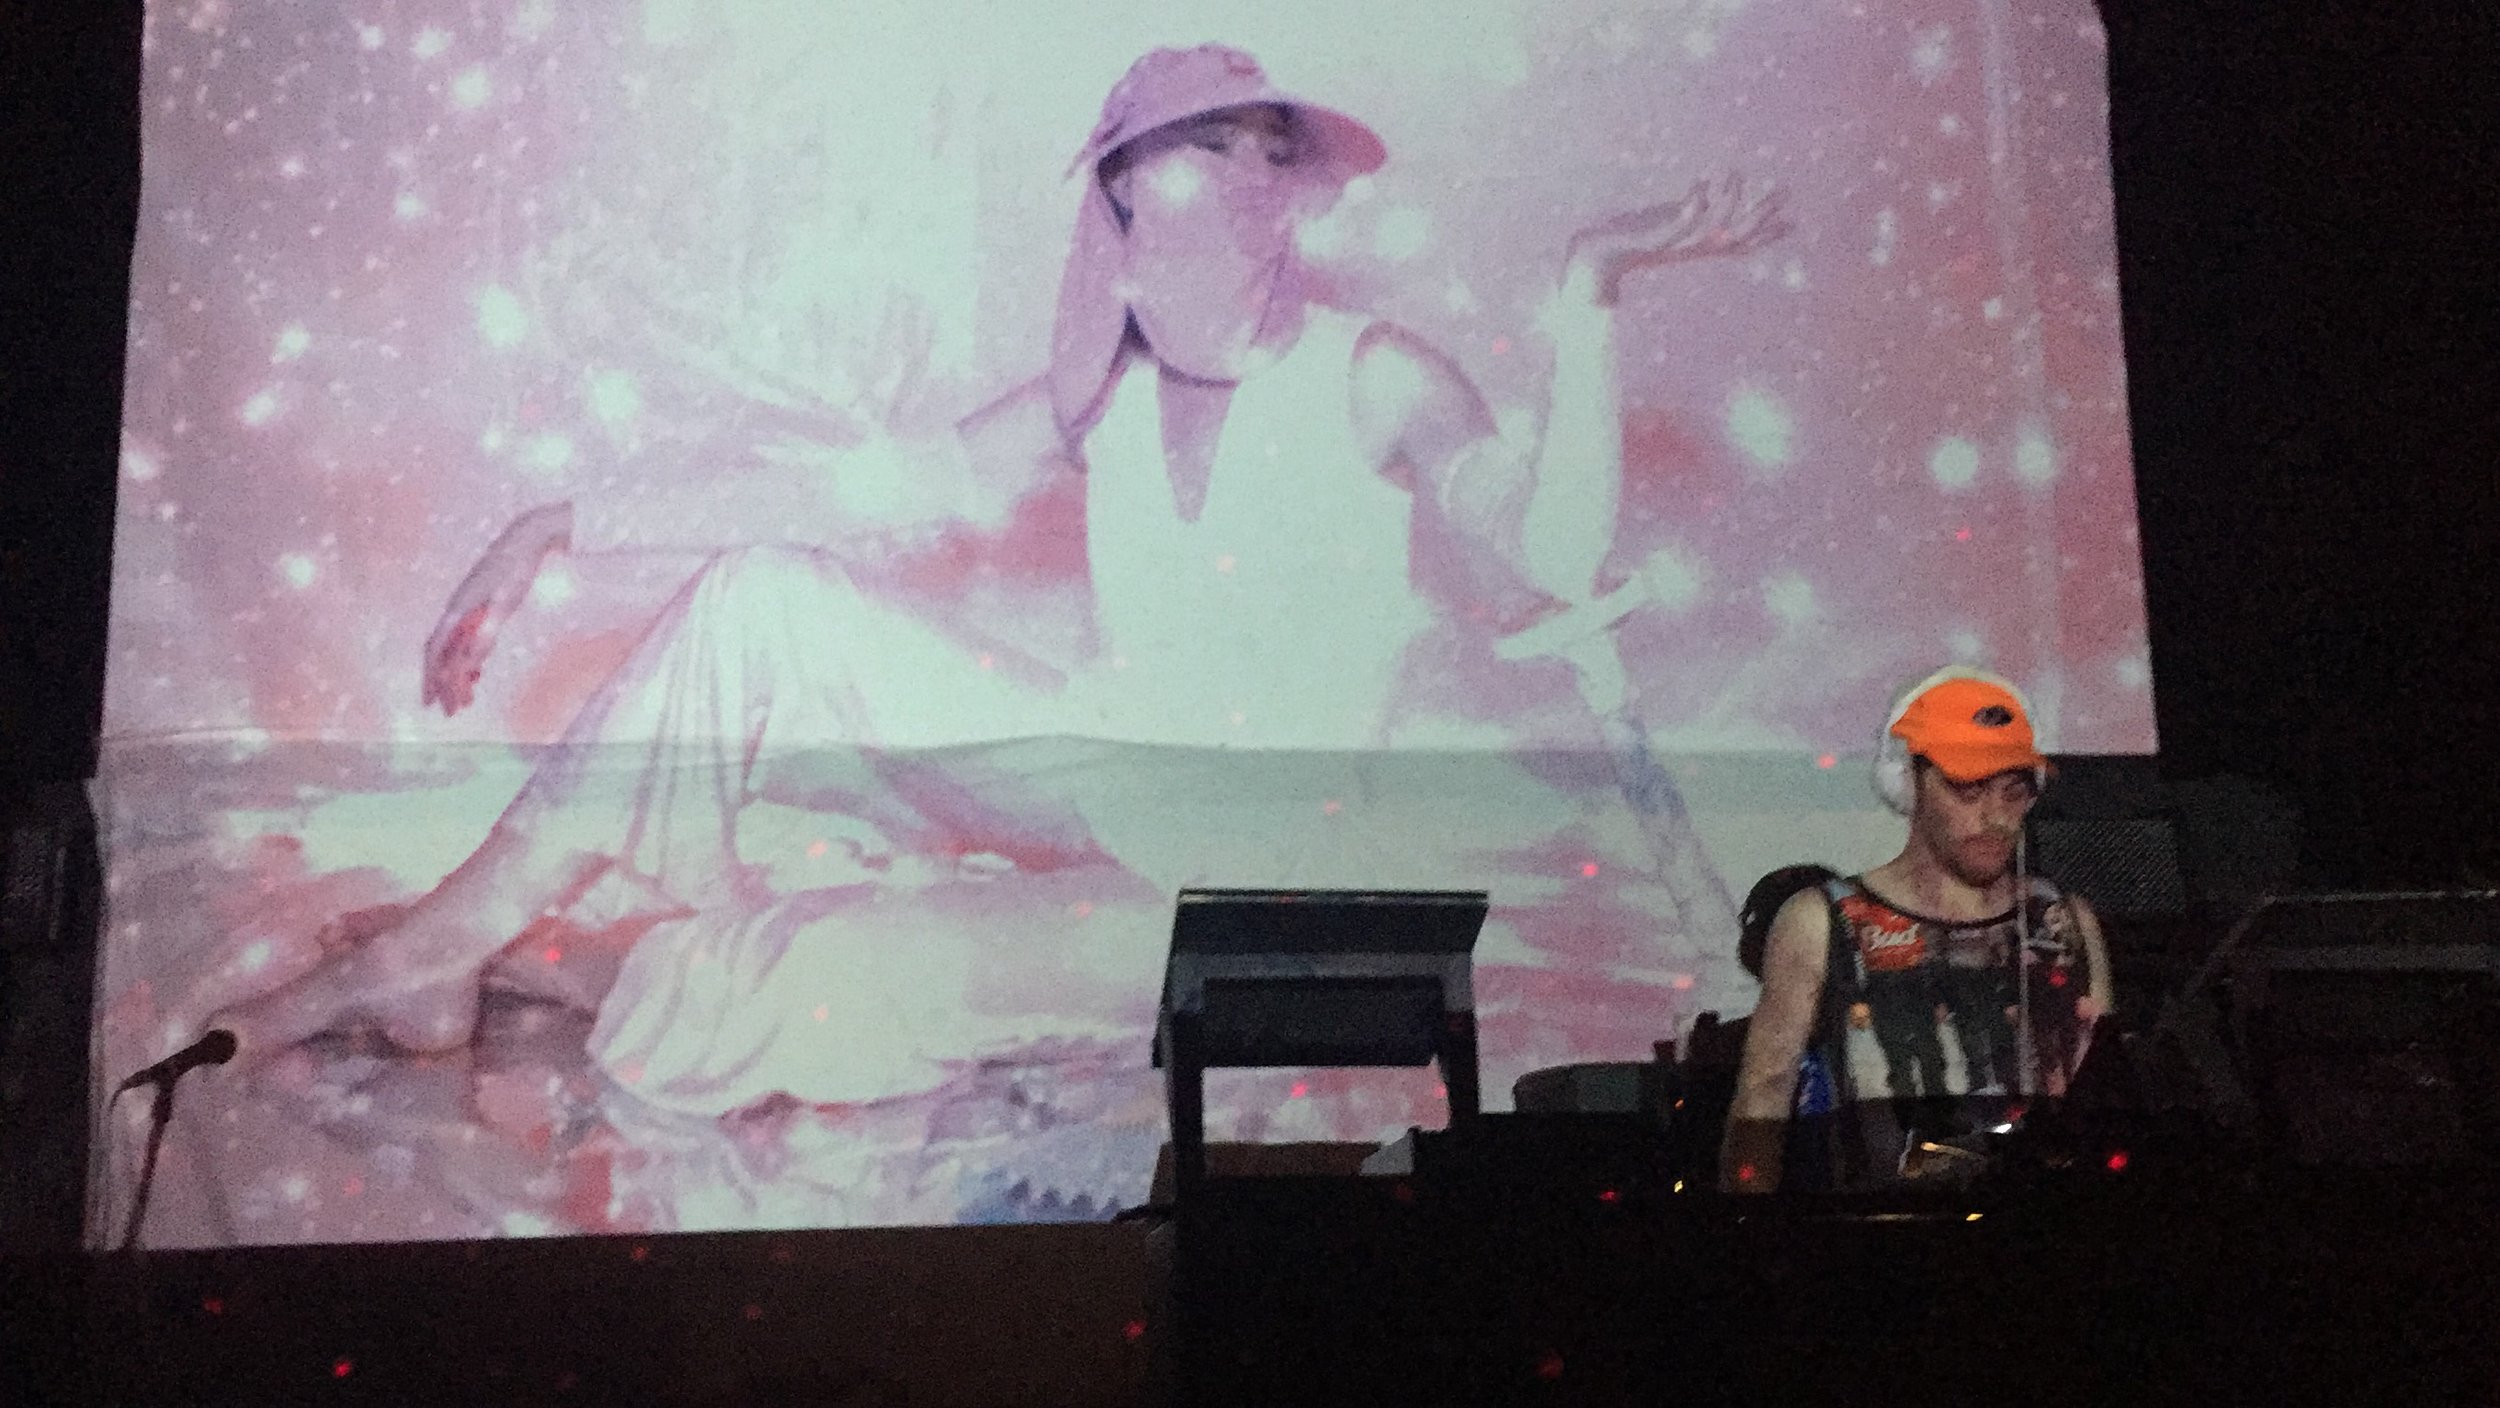 Virgo original footage being projected larger than life behind JX CANNON